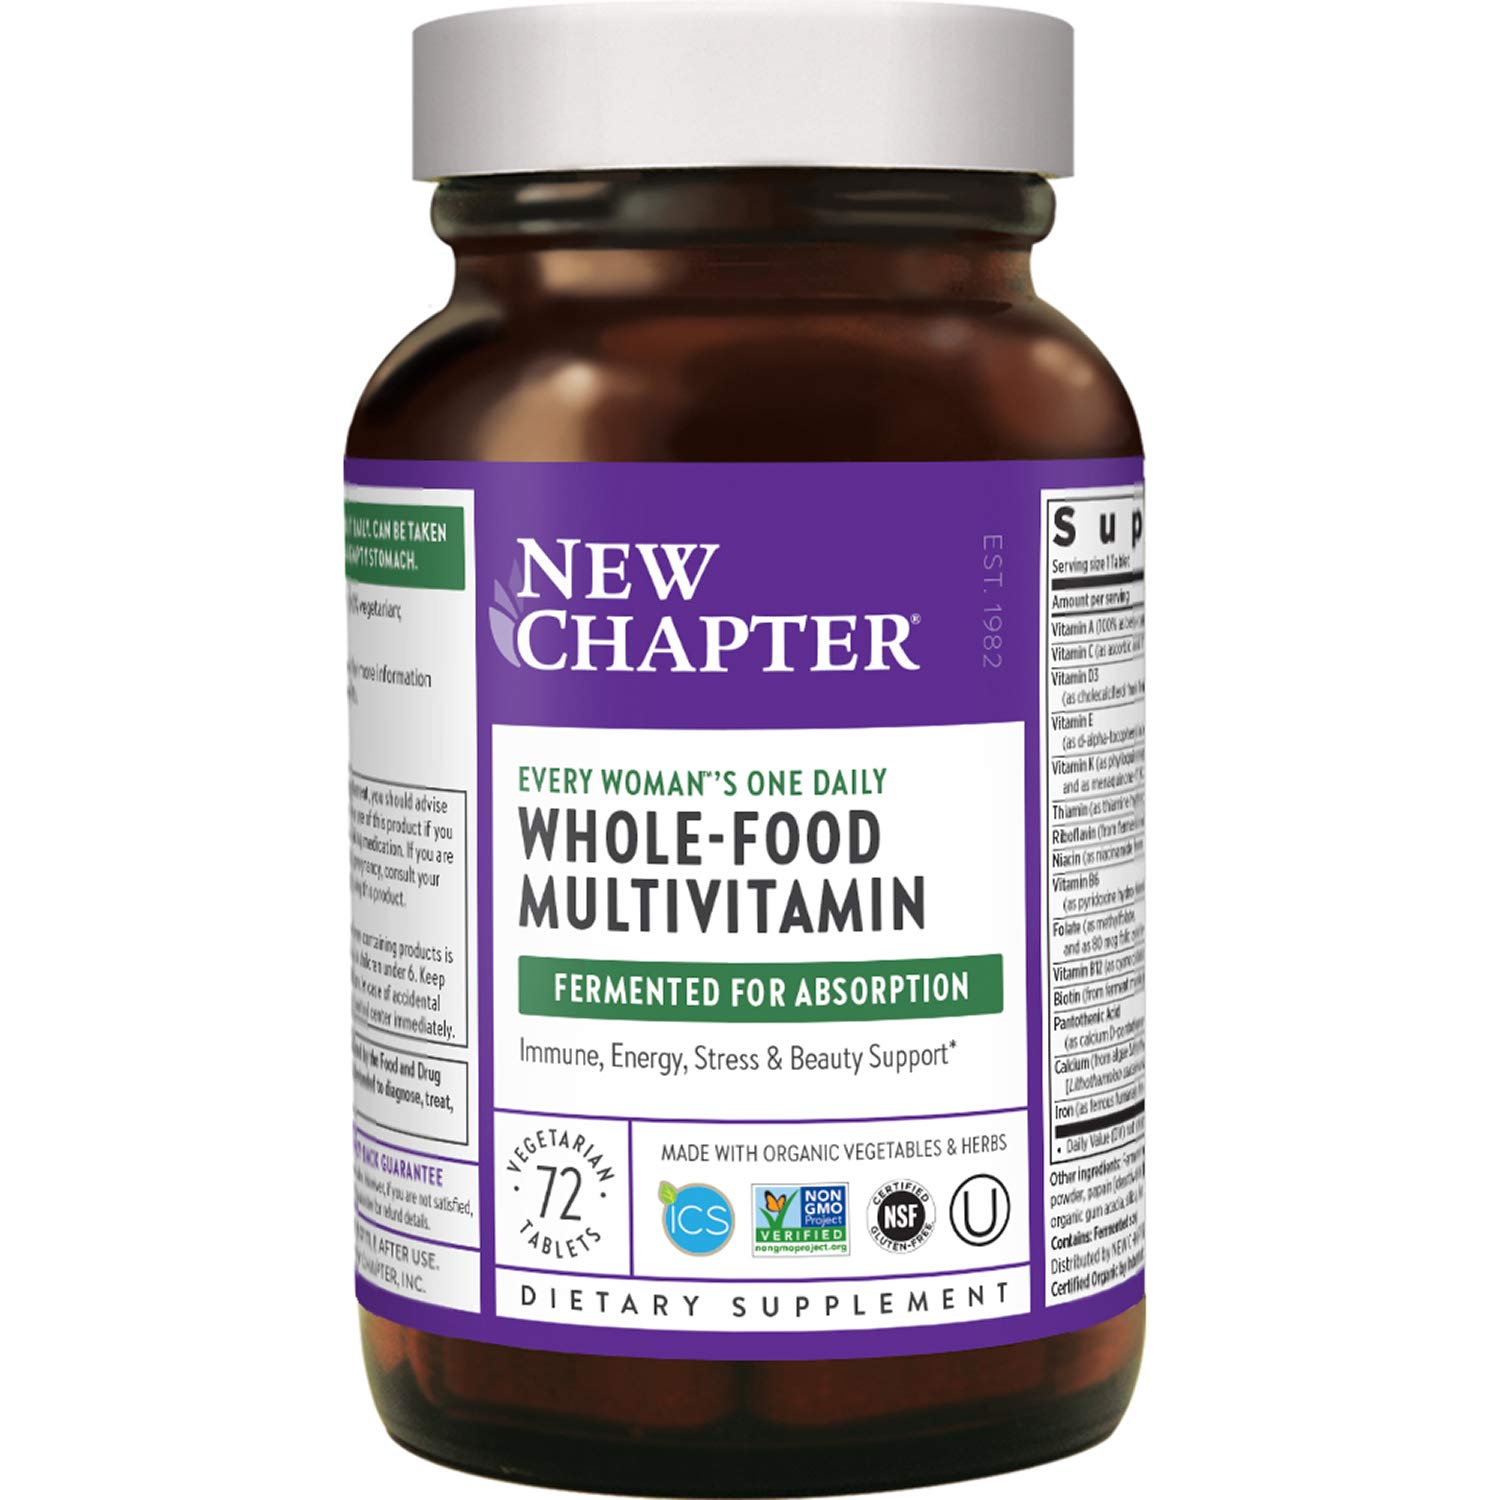 New Chapter Women's Multivitamin + Immune Support – Every Woman's One Daily with Fermented Nutrients - 72 ct